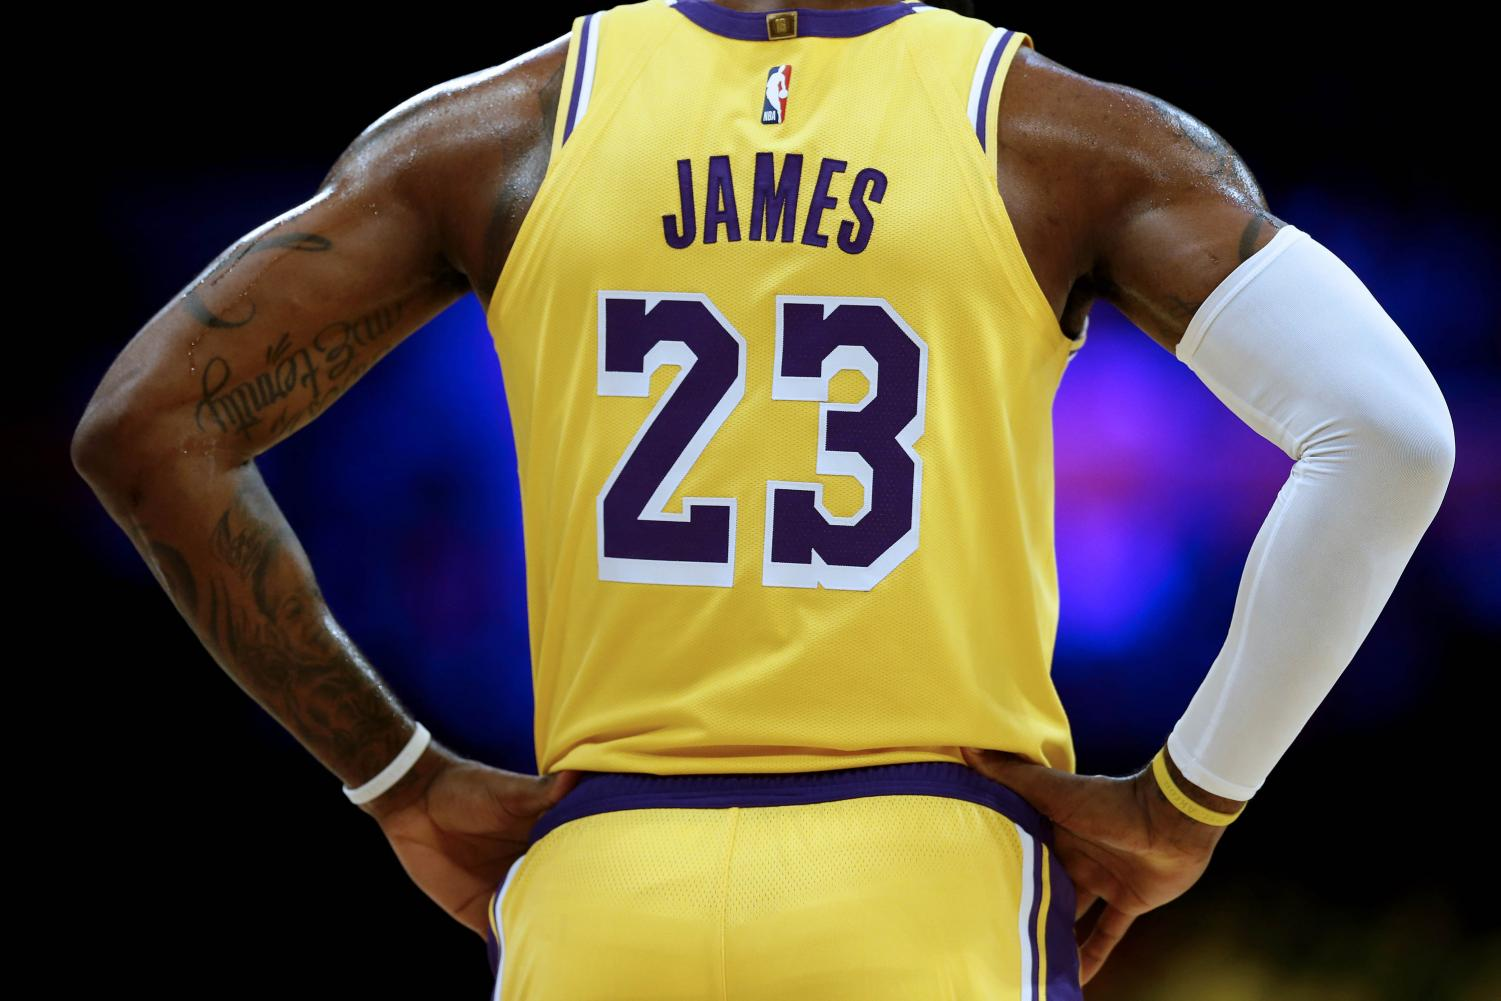 Los Angeles Lakers forward LeBron James (23) in a game against the Denver Nuggets in the first half on Tuesday, Oct. 2, 2018 at the Staples Center in Los Angeles, Calif. (Gary Coronado/Los Angeles Times/TNS)